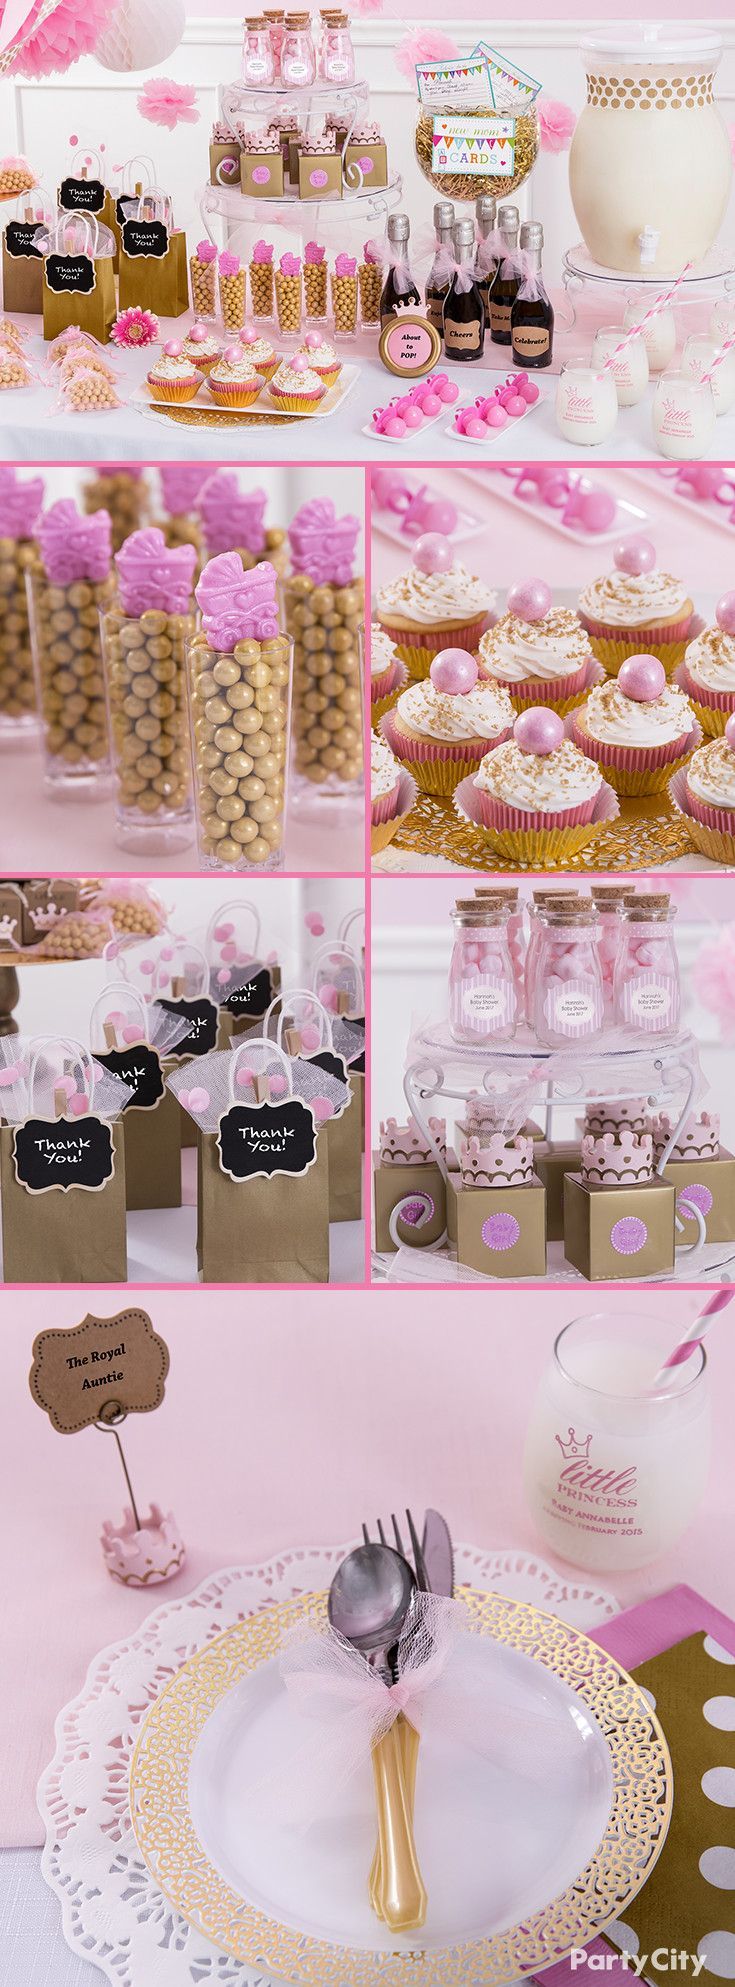 Celebrate the mother-to-be with a baby shower worthy of royalty! Create a  majestic spread with pink organza favor bags, gold gift bags, shimmering  desserts ...